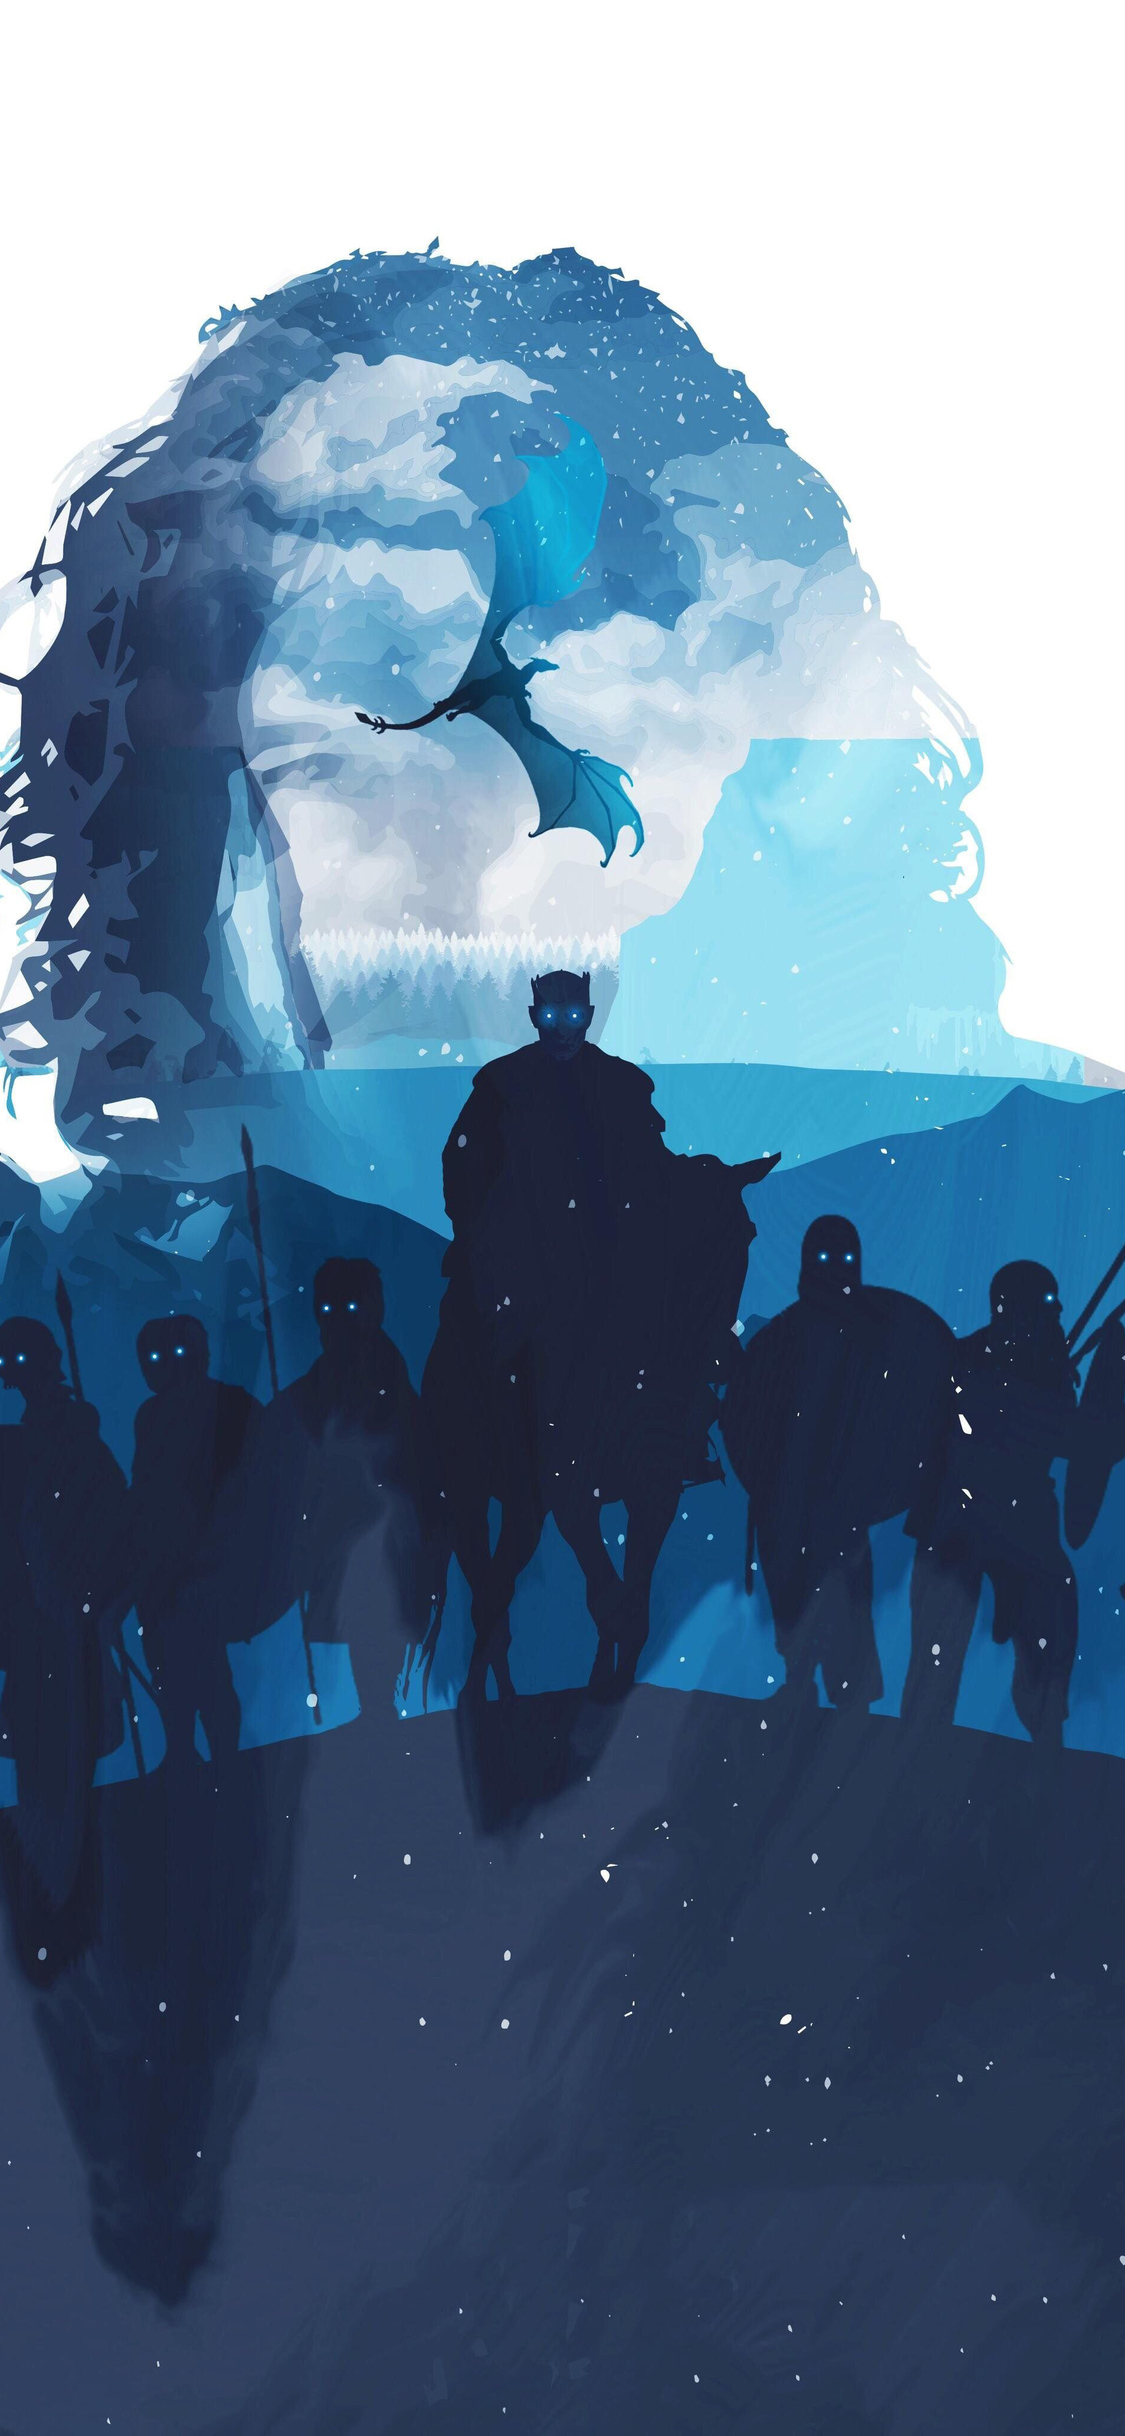 winter is here iPhone game of thrones wallpaper - Tổng hợp ảnh nền Game of Thrones đẹp nhất cho iPhone